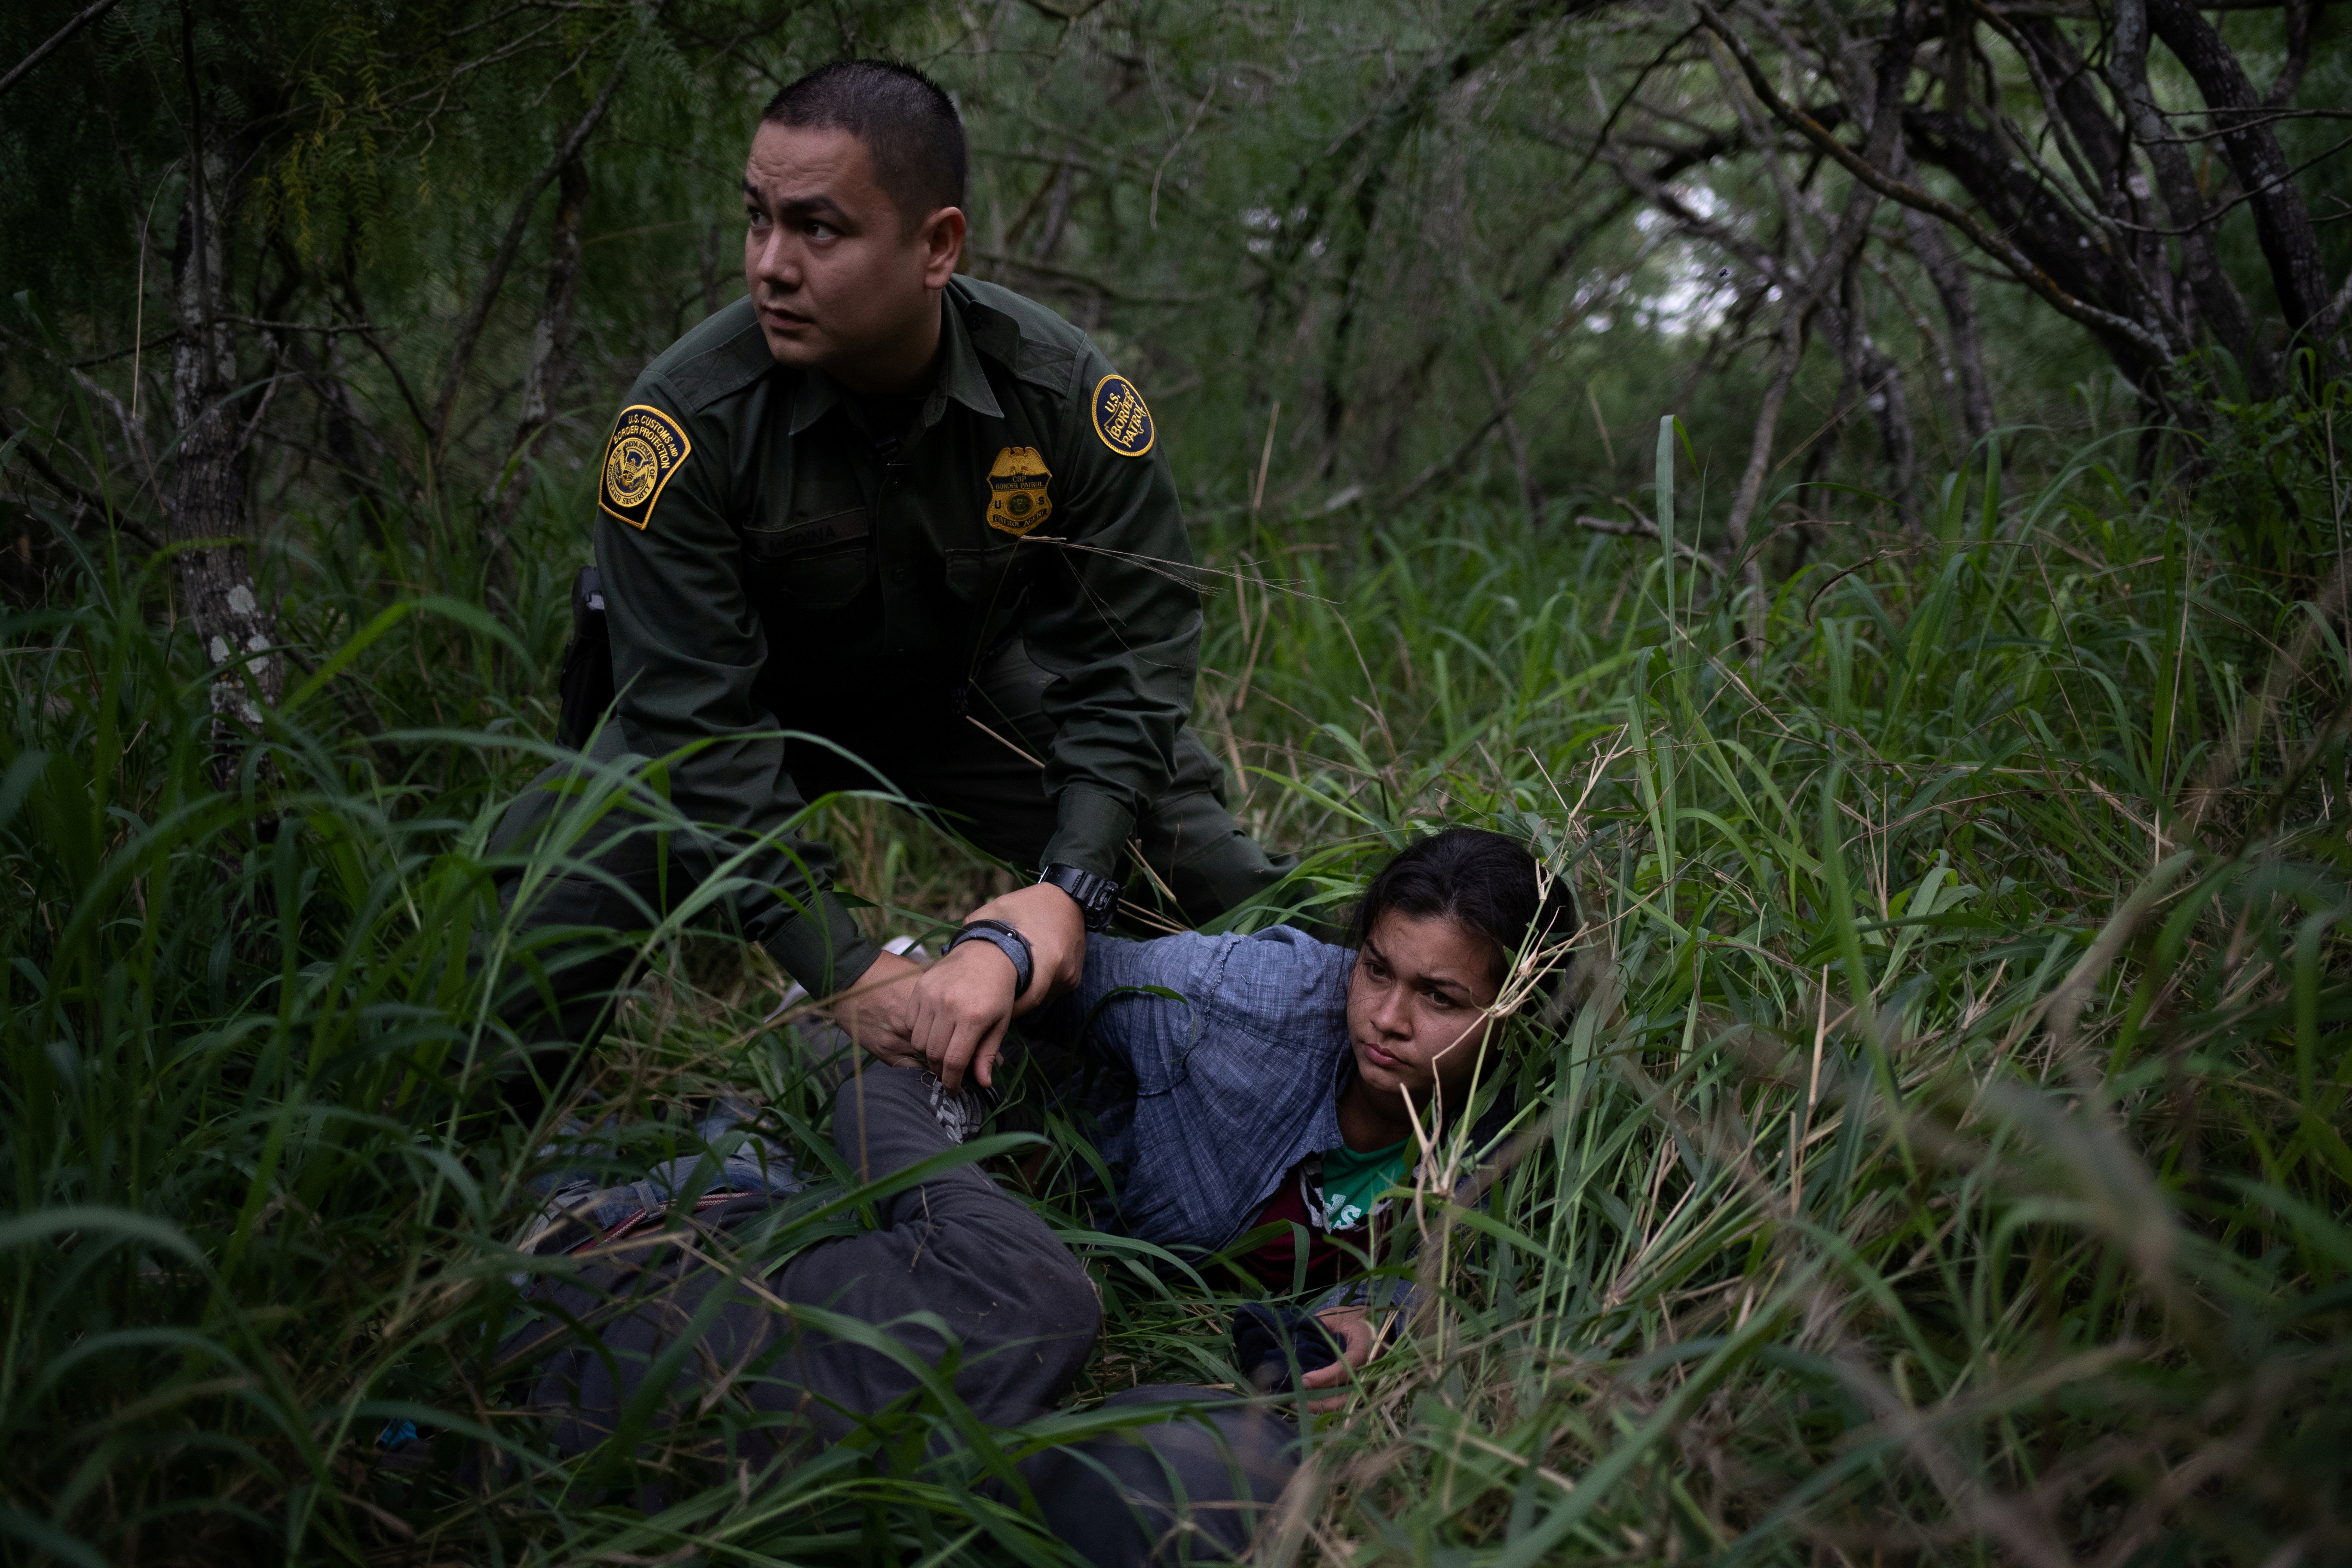 """A border patrol agent apprehends a woman and a man after they were caught illegally crossing into the U.S. border from Mexico near McAllen, Texas, U.S., May 2, 2018. Reuters photographer Adrees Latif: """"One could hardly tell there were people lying in the brush even as a U.S. Border Patrol agent stood over these migrants. They were tracked into the brush by their shoe prints. The group of nine had taken cover overnight and were apprehended the following morning for illegally crossing into the U.S. from Mexico."""" REUTERS/Adrees Latif  SEARCH """"IMMIGRATION POY"""" FOR THIS STORY. SEARCH """"REUTERS POY"""" FOR ALL BEST OF 2018 PACKAGES. TPX IMAGES OF THE DAY."""